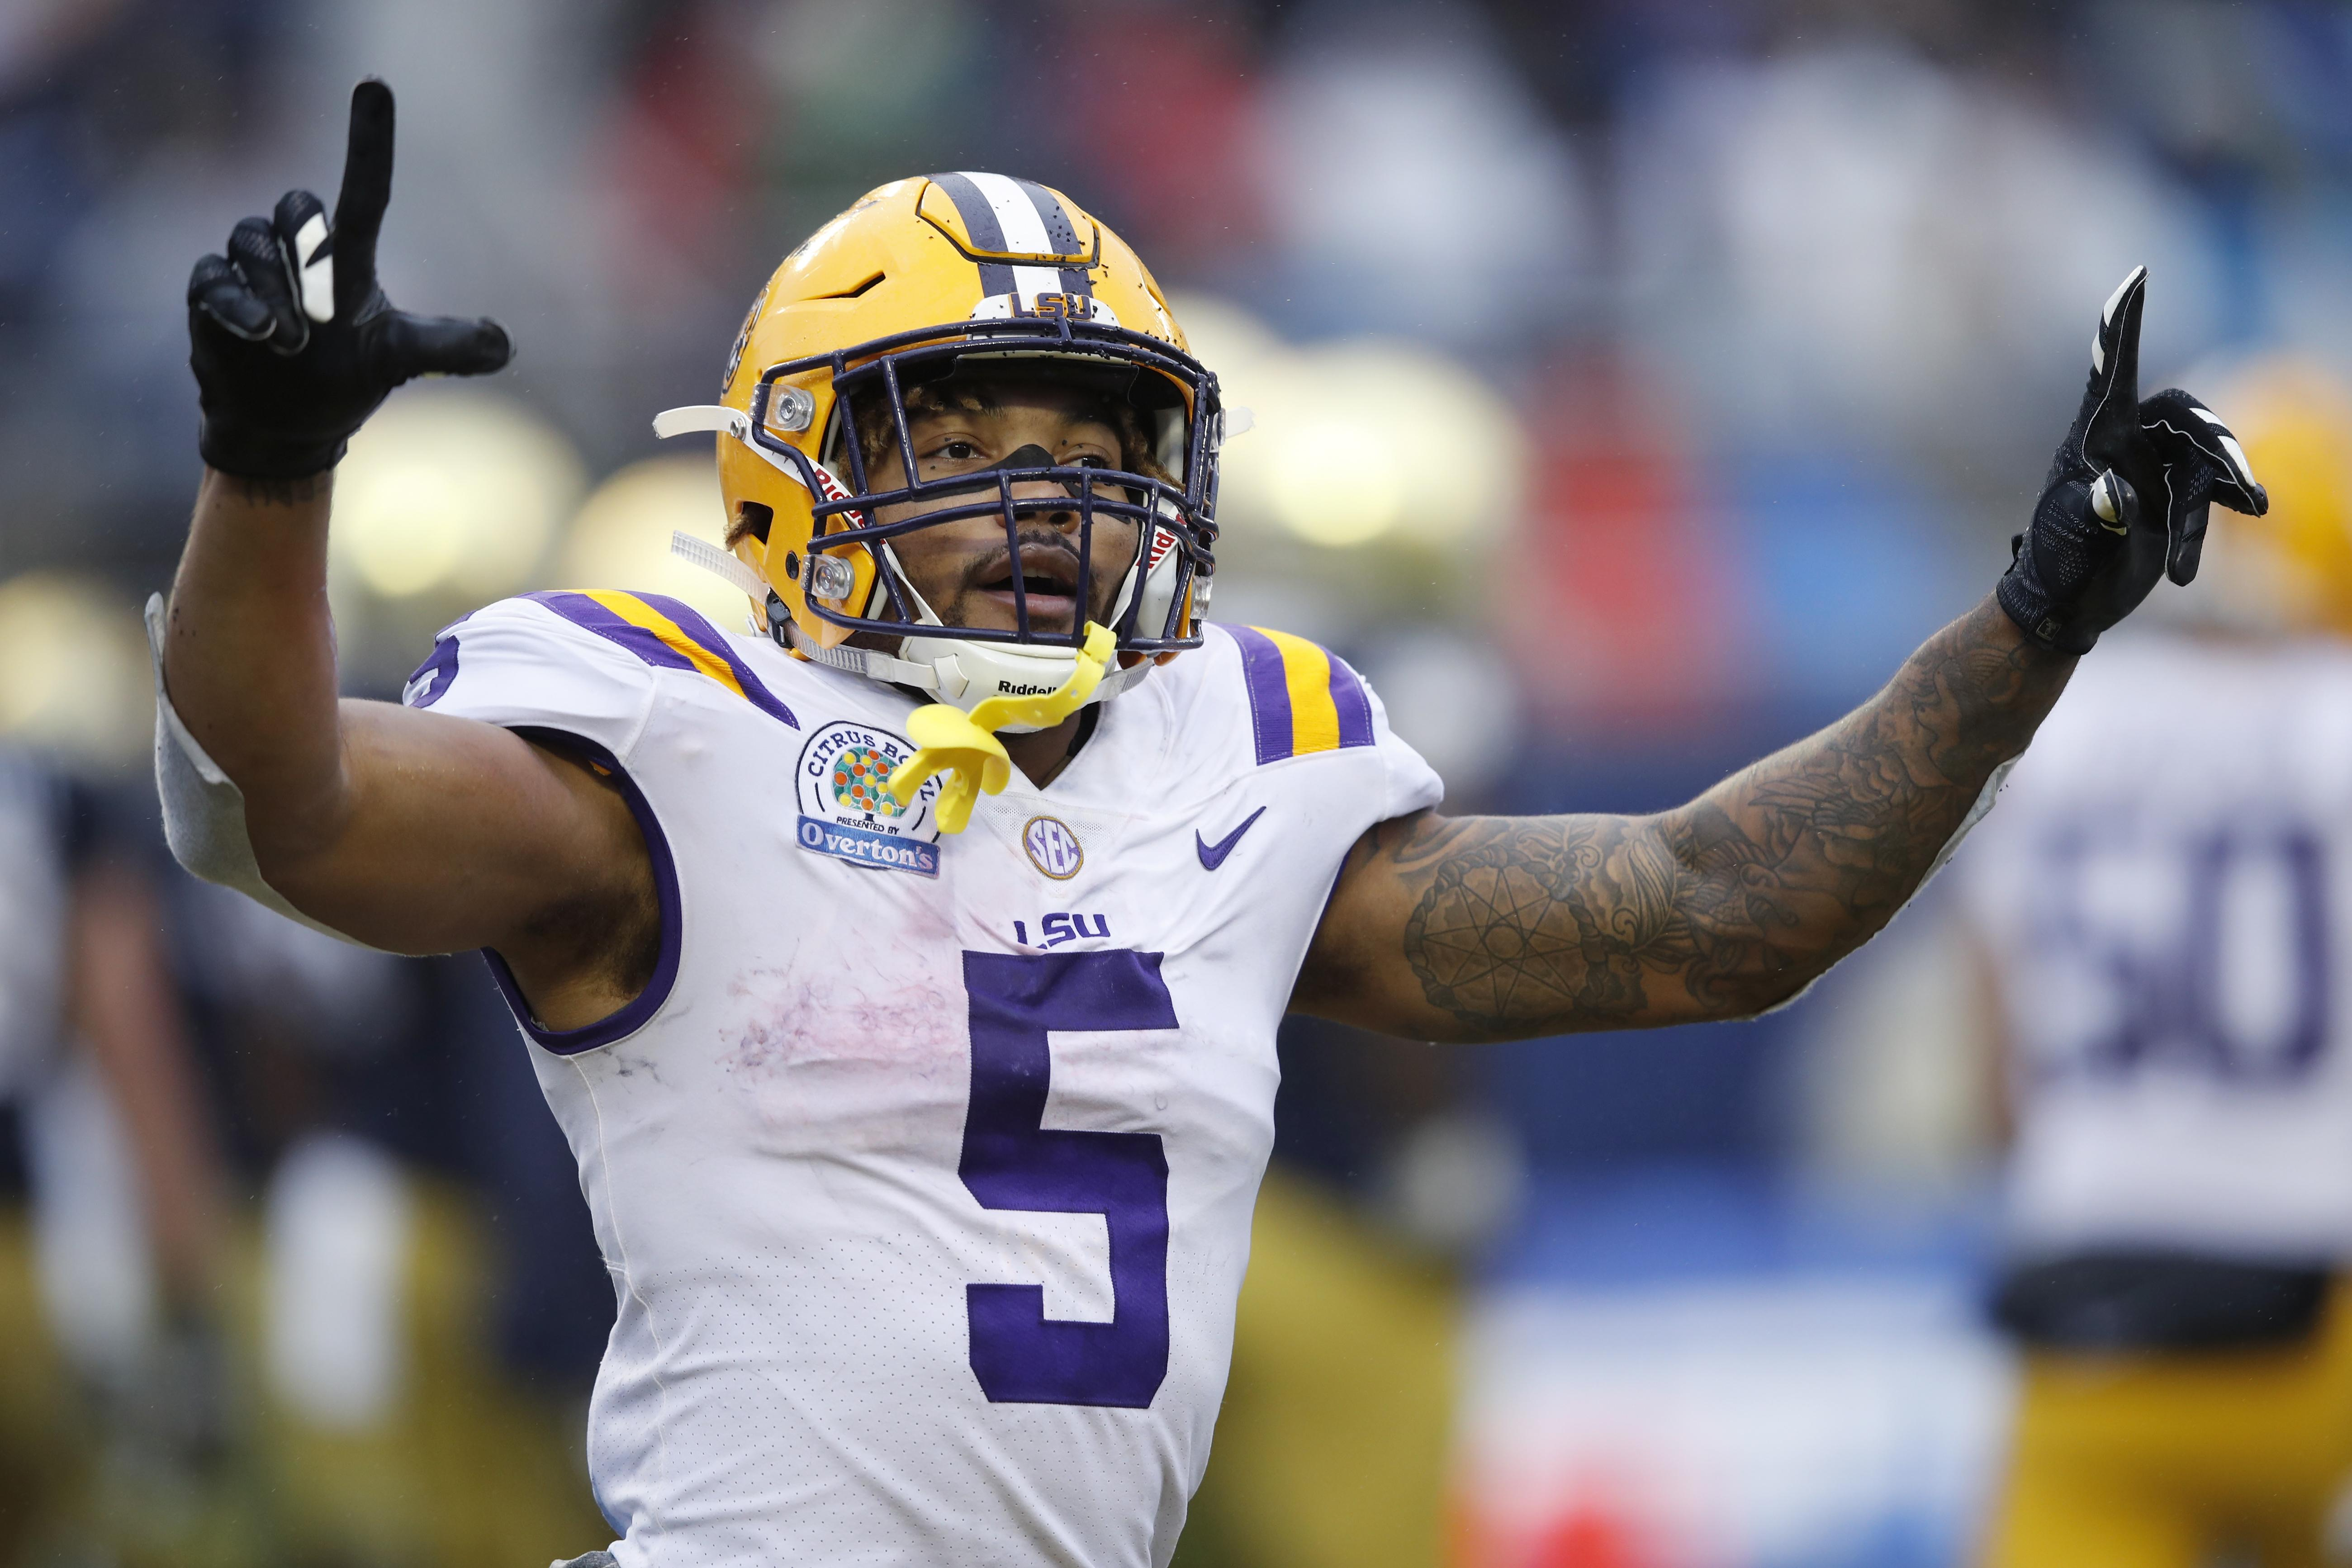 LSU Didn't Investigate Multiple Rape Allegations Against Derrius Guice